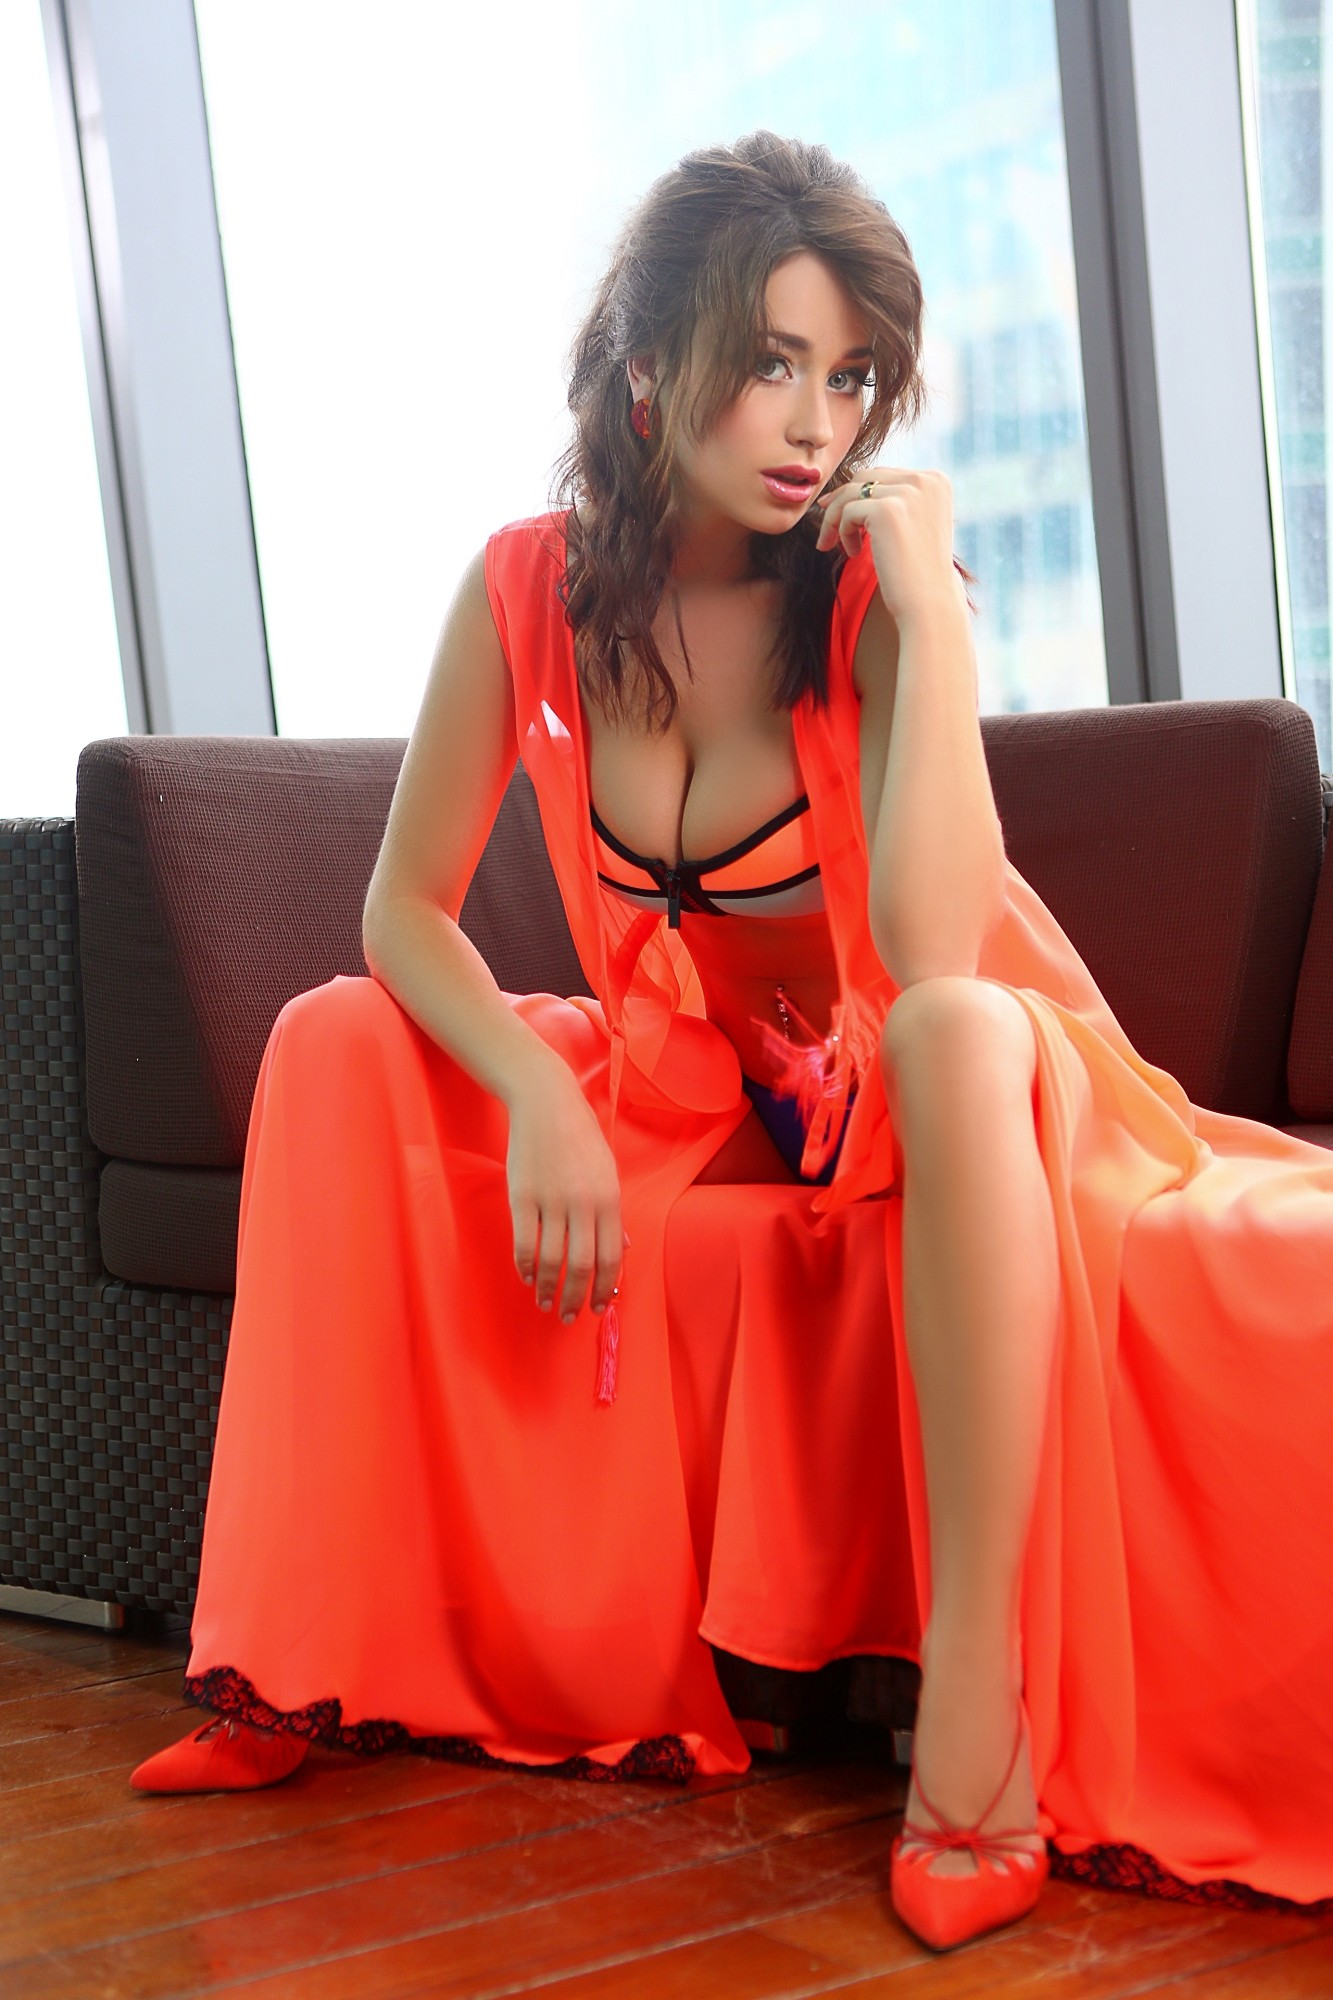 Marie-Antoinette (22), escort in Moscow, Moskva, Russia